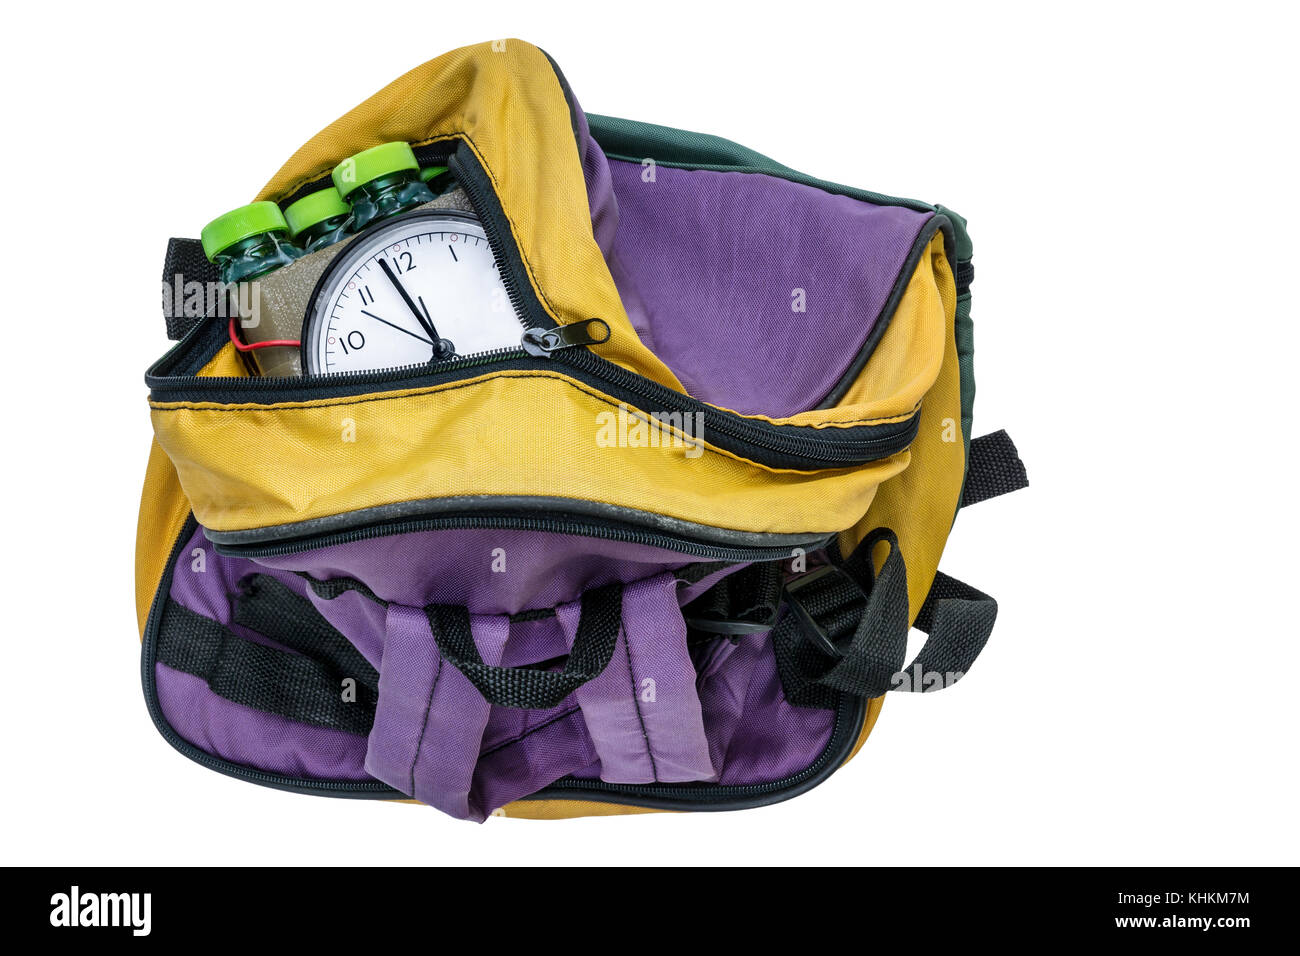 Timed bomb in colored bag. Imitation of time bomb inside the bagpack on white background. Isolated. - Stock Image